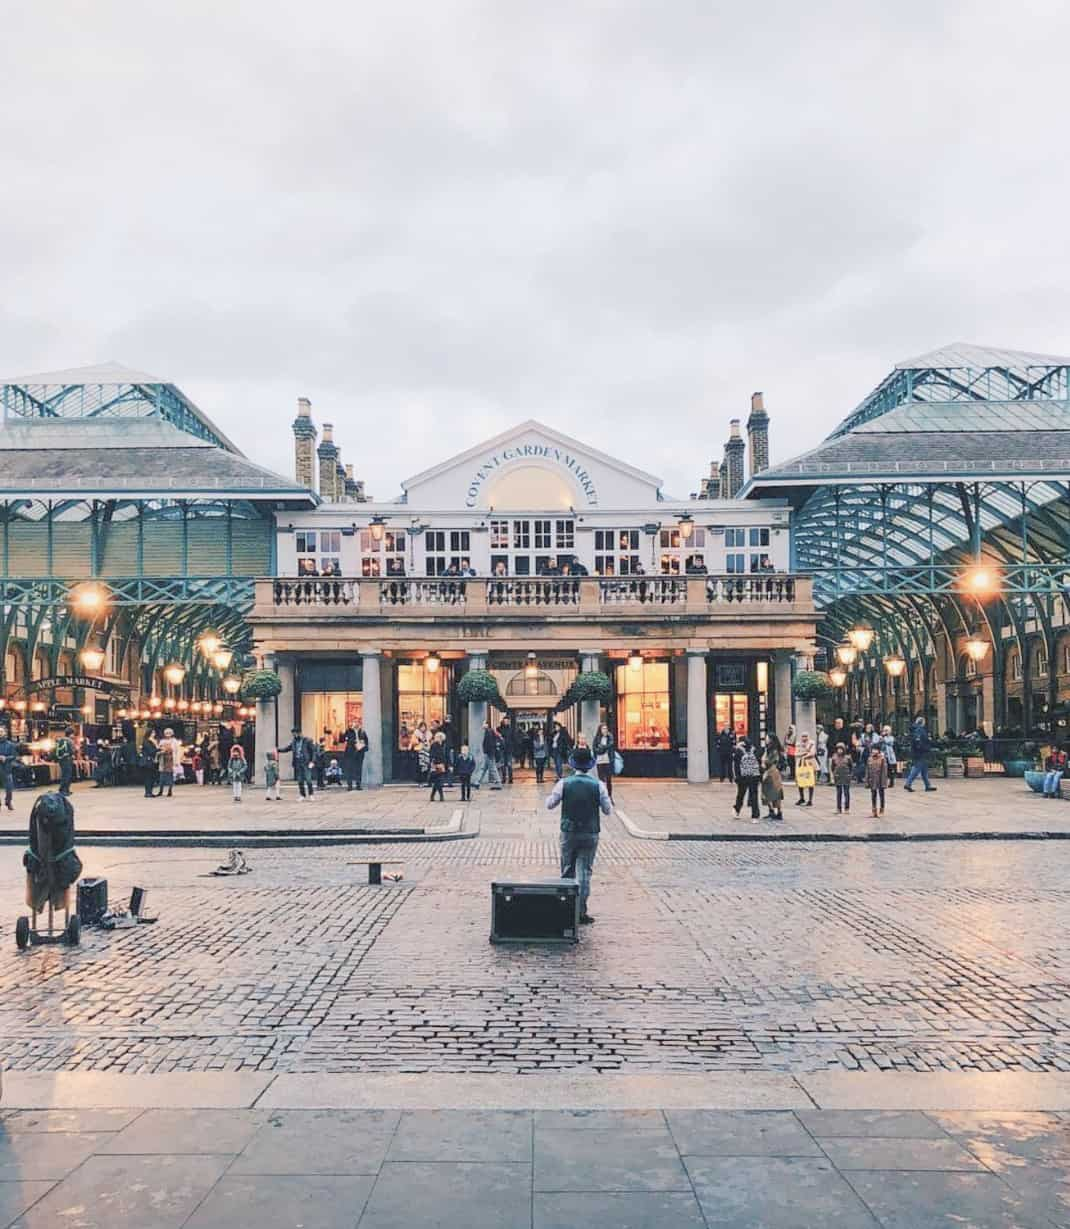 The Best Shopping In London - Covent Garden Market